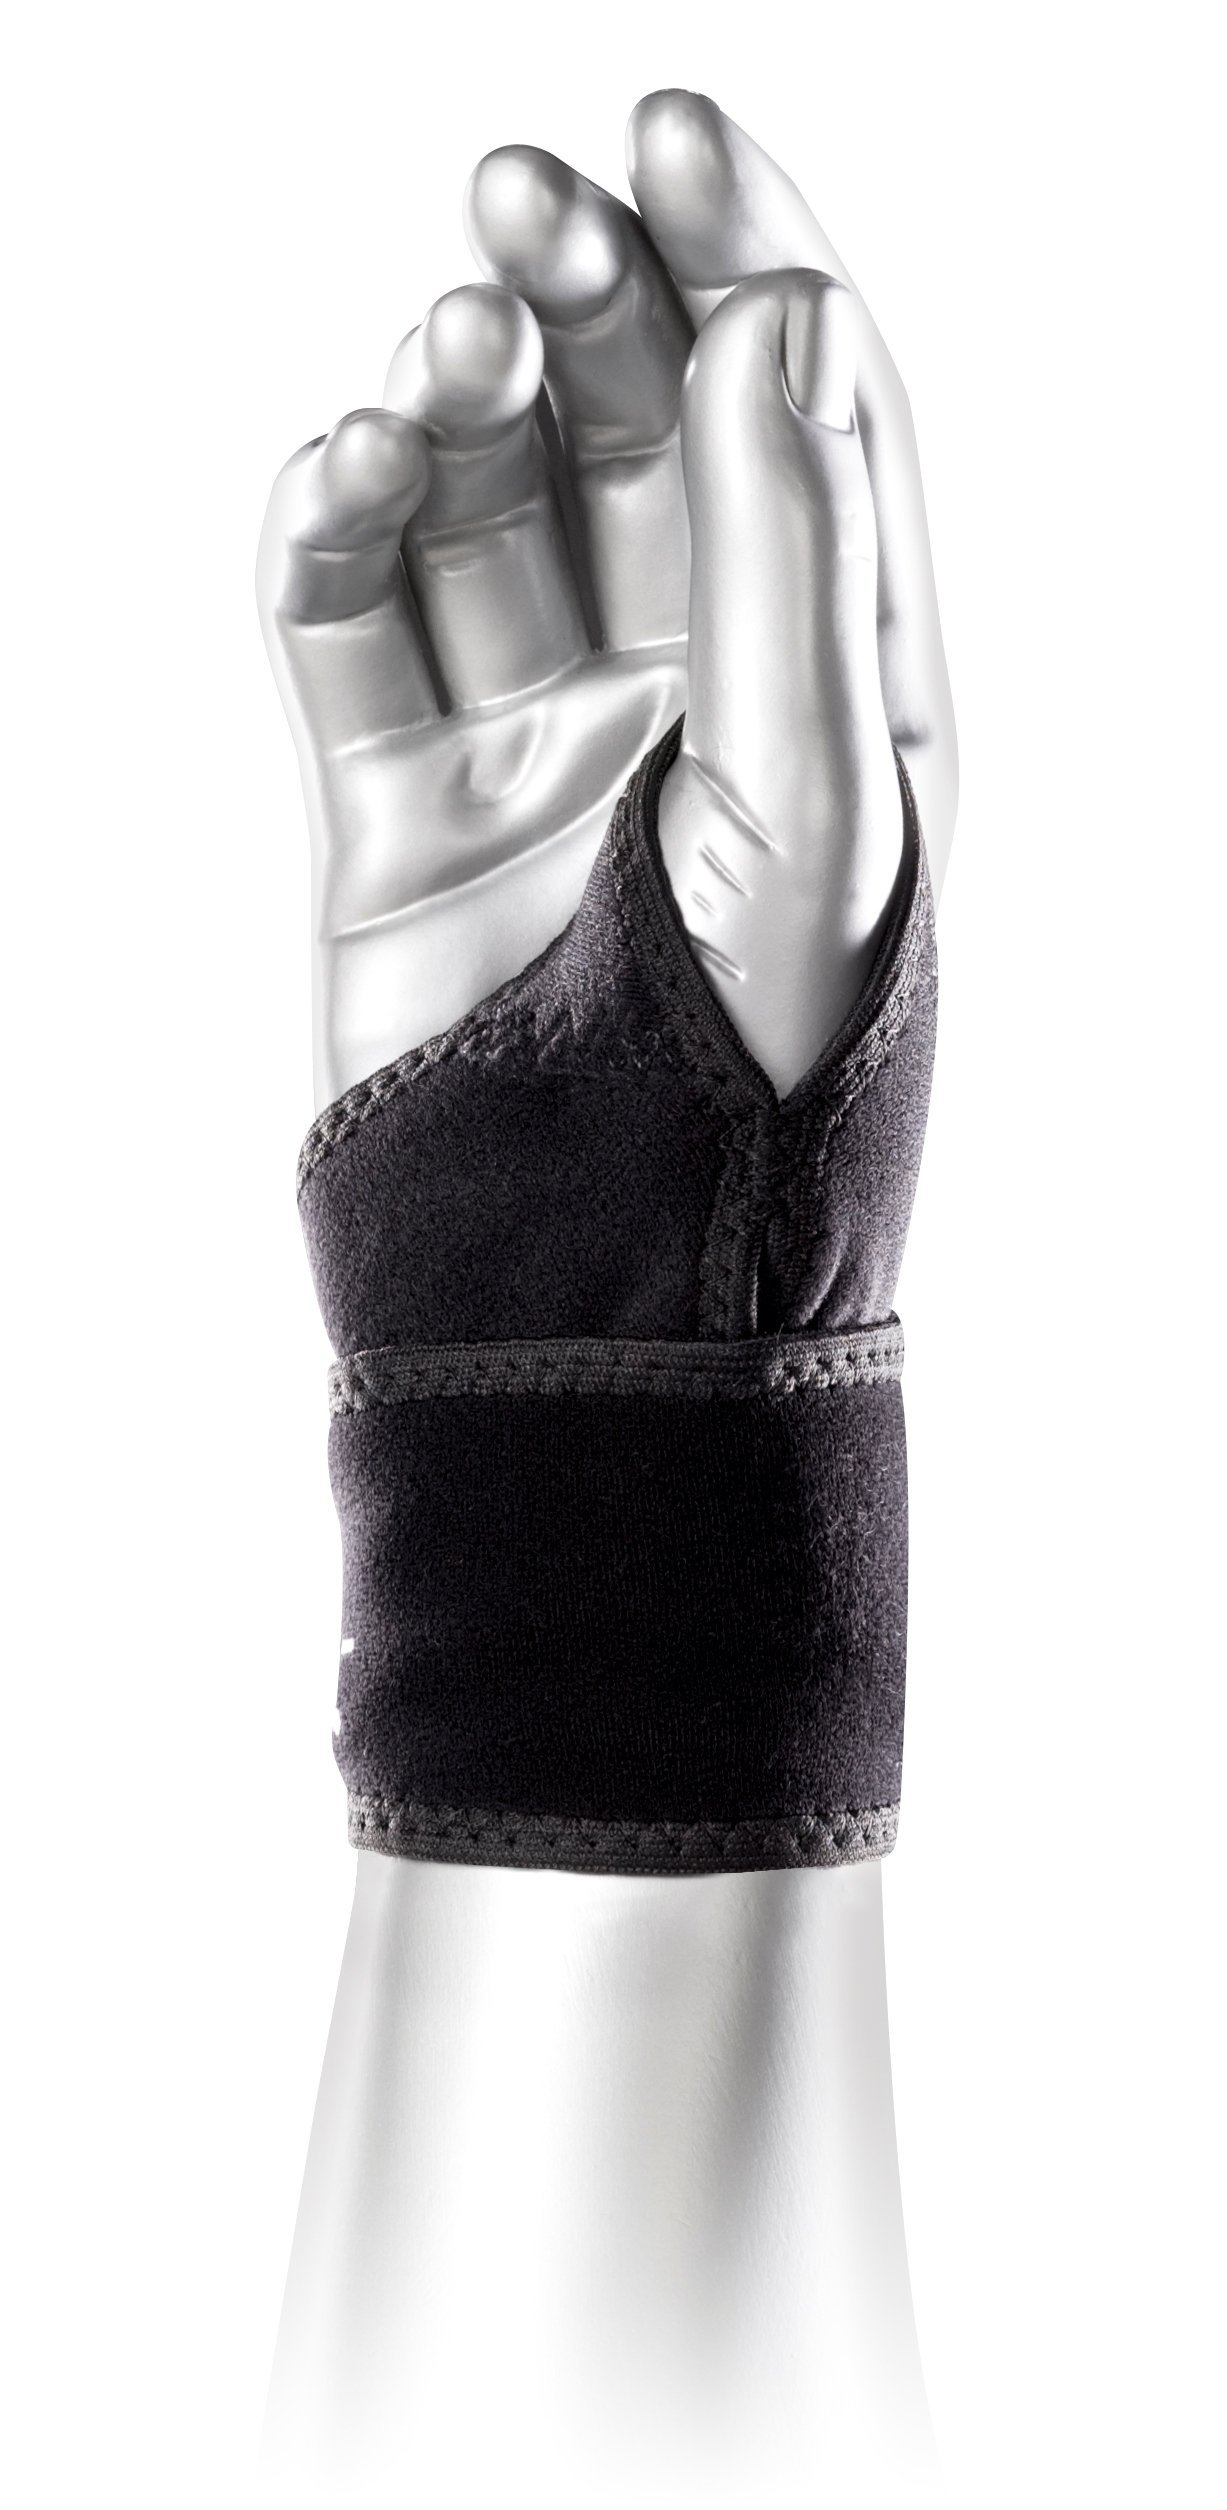 Wrist Wrap for Carpal Tunnel, Arthritis and Weight Lifting - Hypoallergenic Wrist Support - Boomerang, by BioSkin